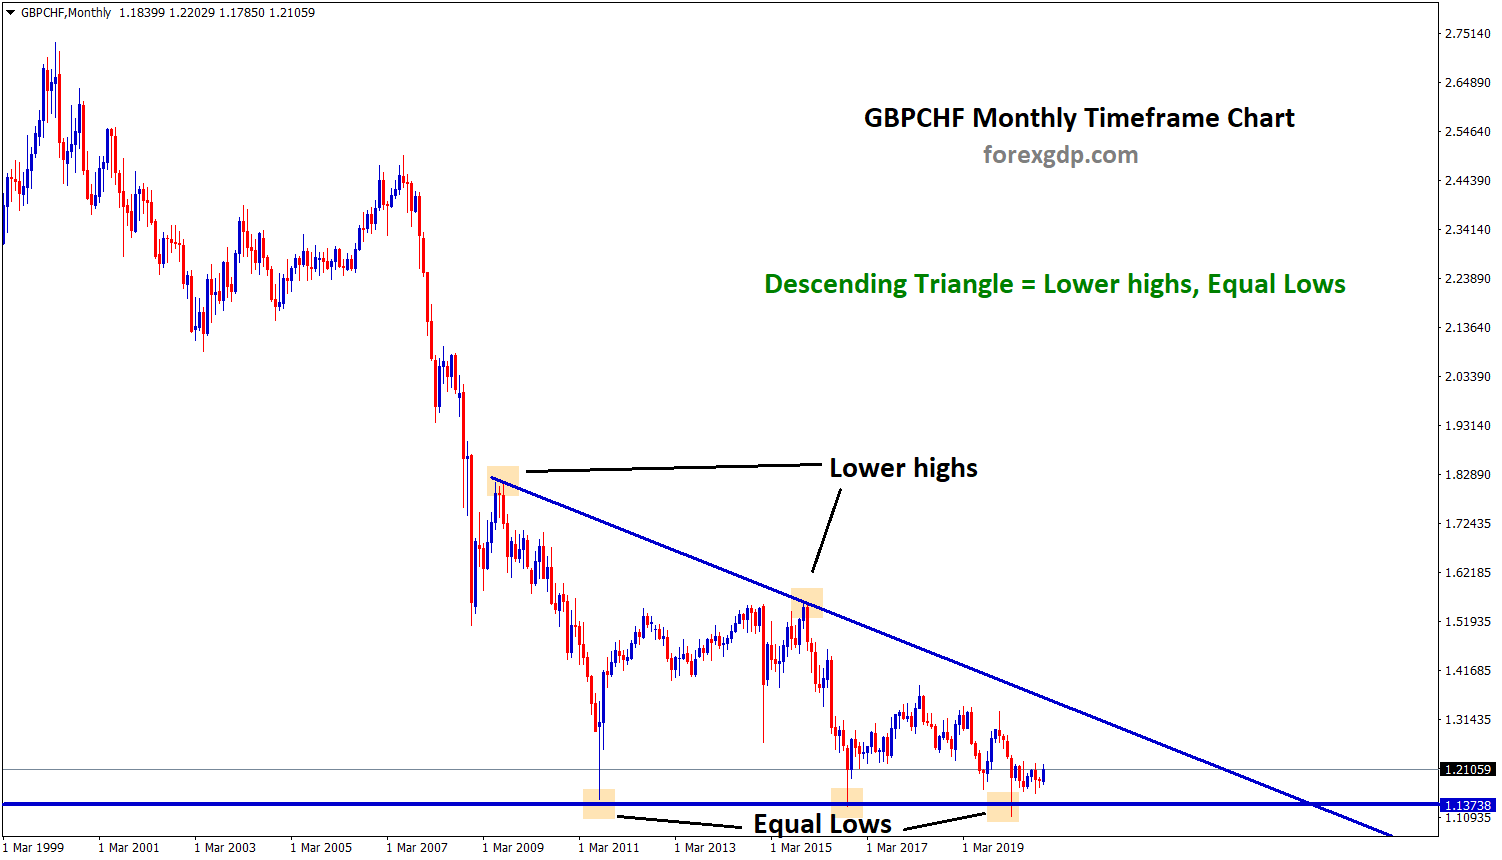 gbpchf descending triangle lower highs and equal lows